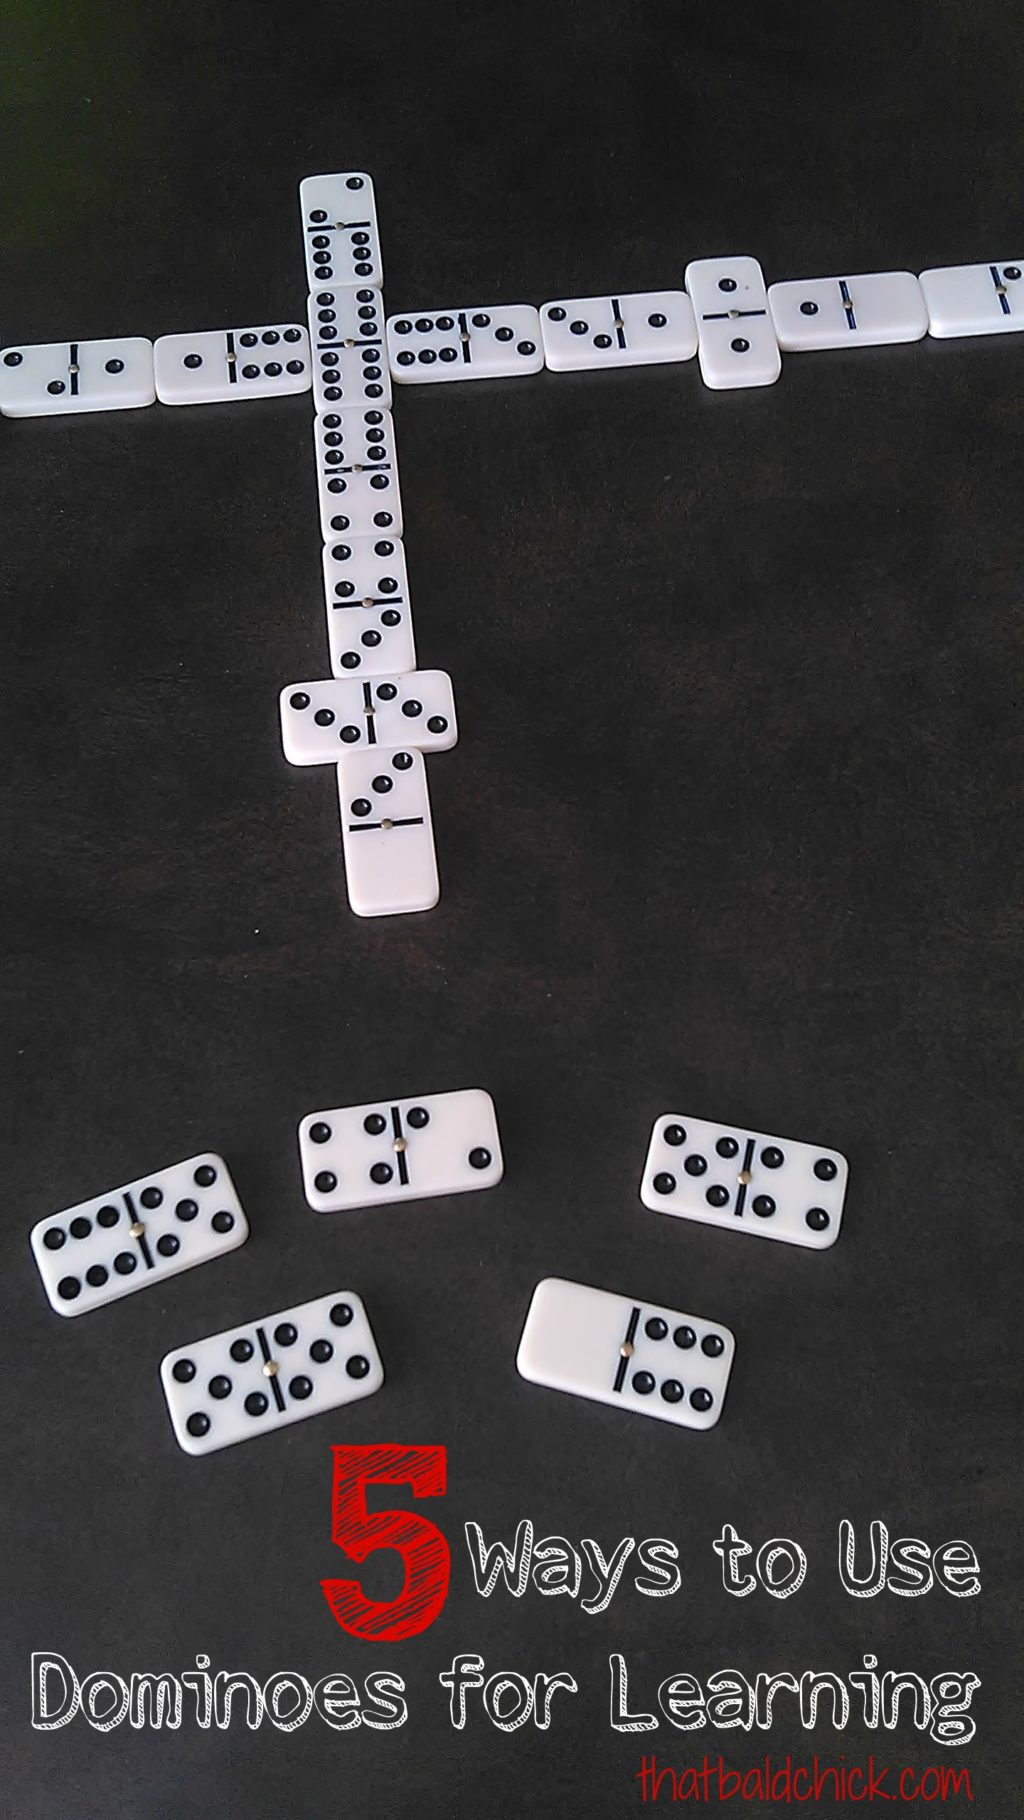 5 ways to use dominoes for learning at thatbaldchick.com